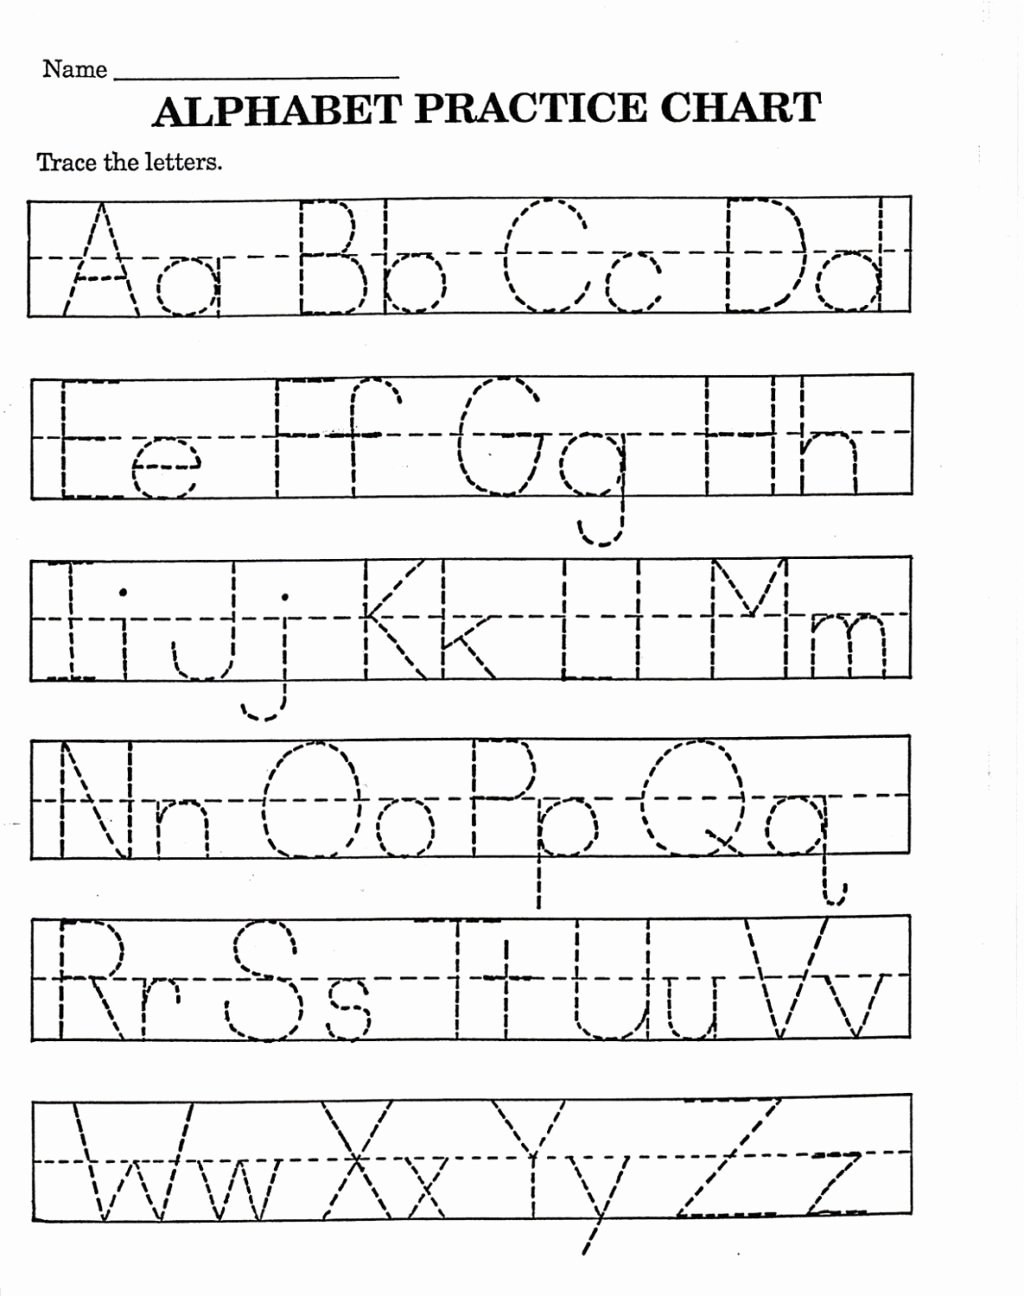 Alphabet Learning Worksheets for Preschoolers top Worksheet Worksheet Alphabet Worksheets Practice Chart